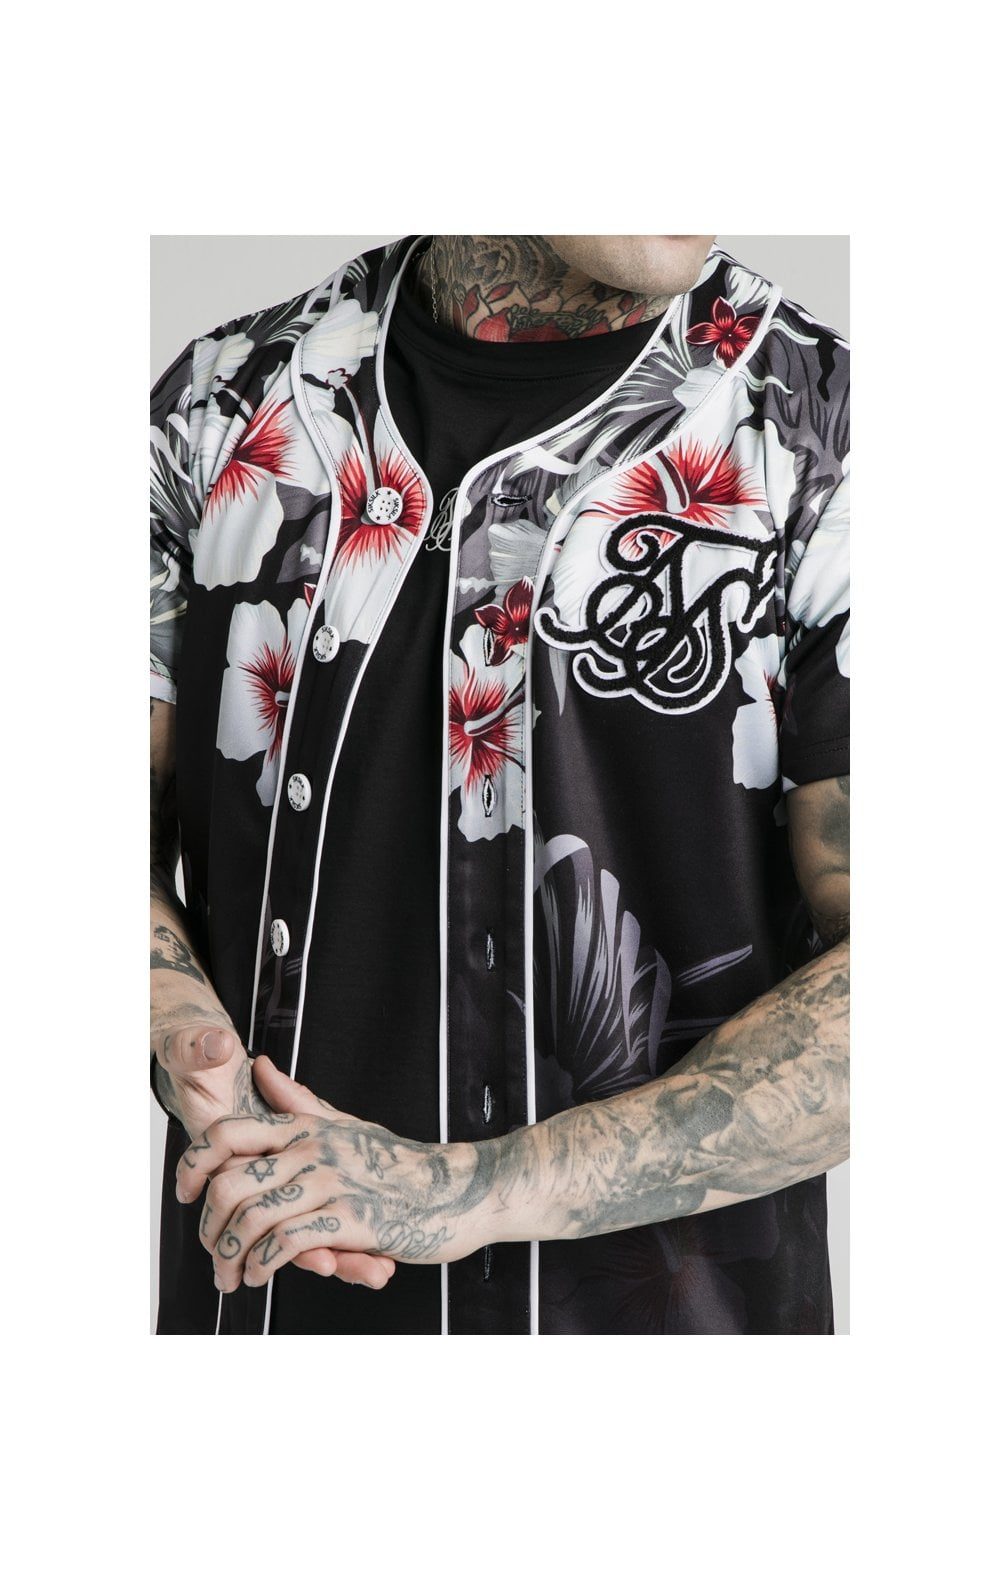 Load image into Gallery viewer, SikSilk Floral Baseball Jersey - Black (1)